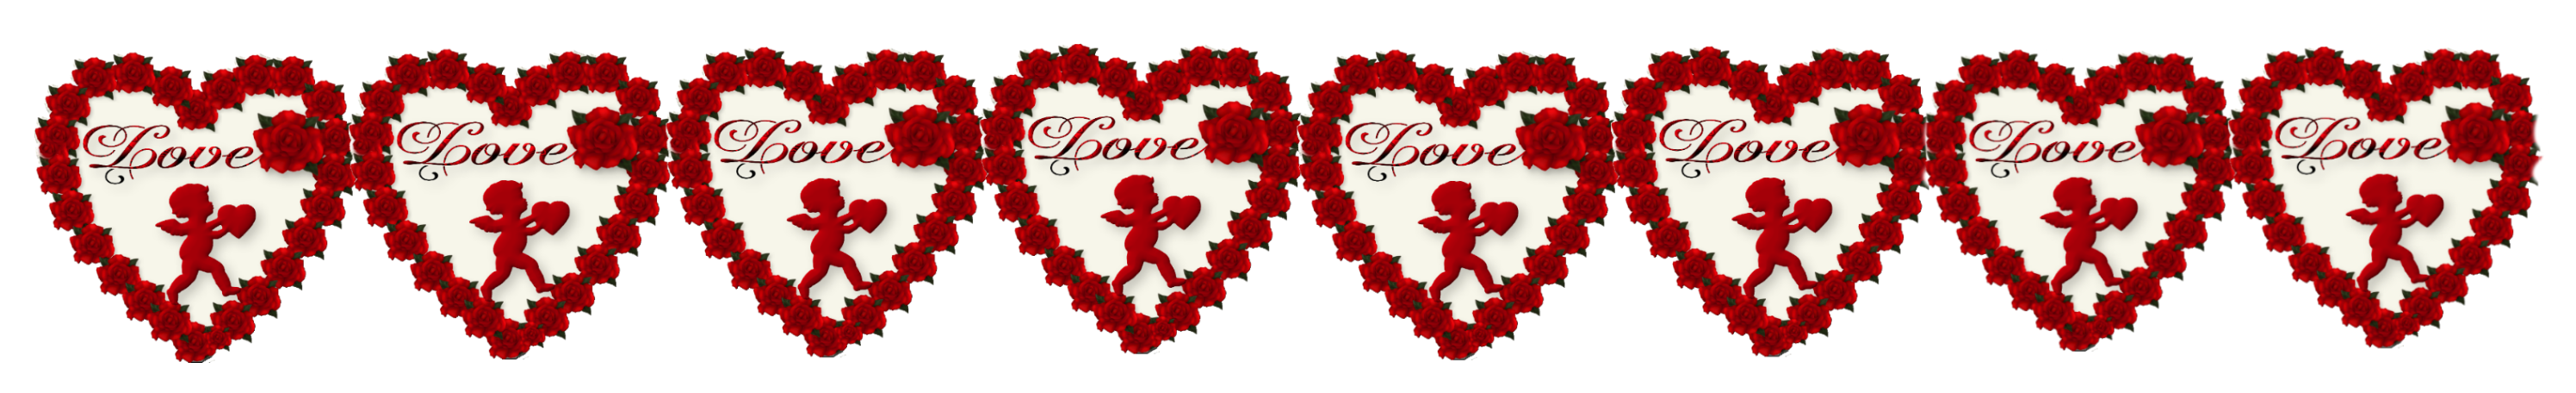 Valentines day border png. Hearts decor picture gallery